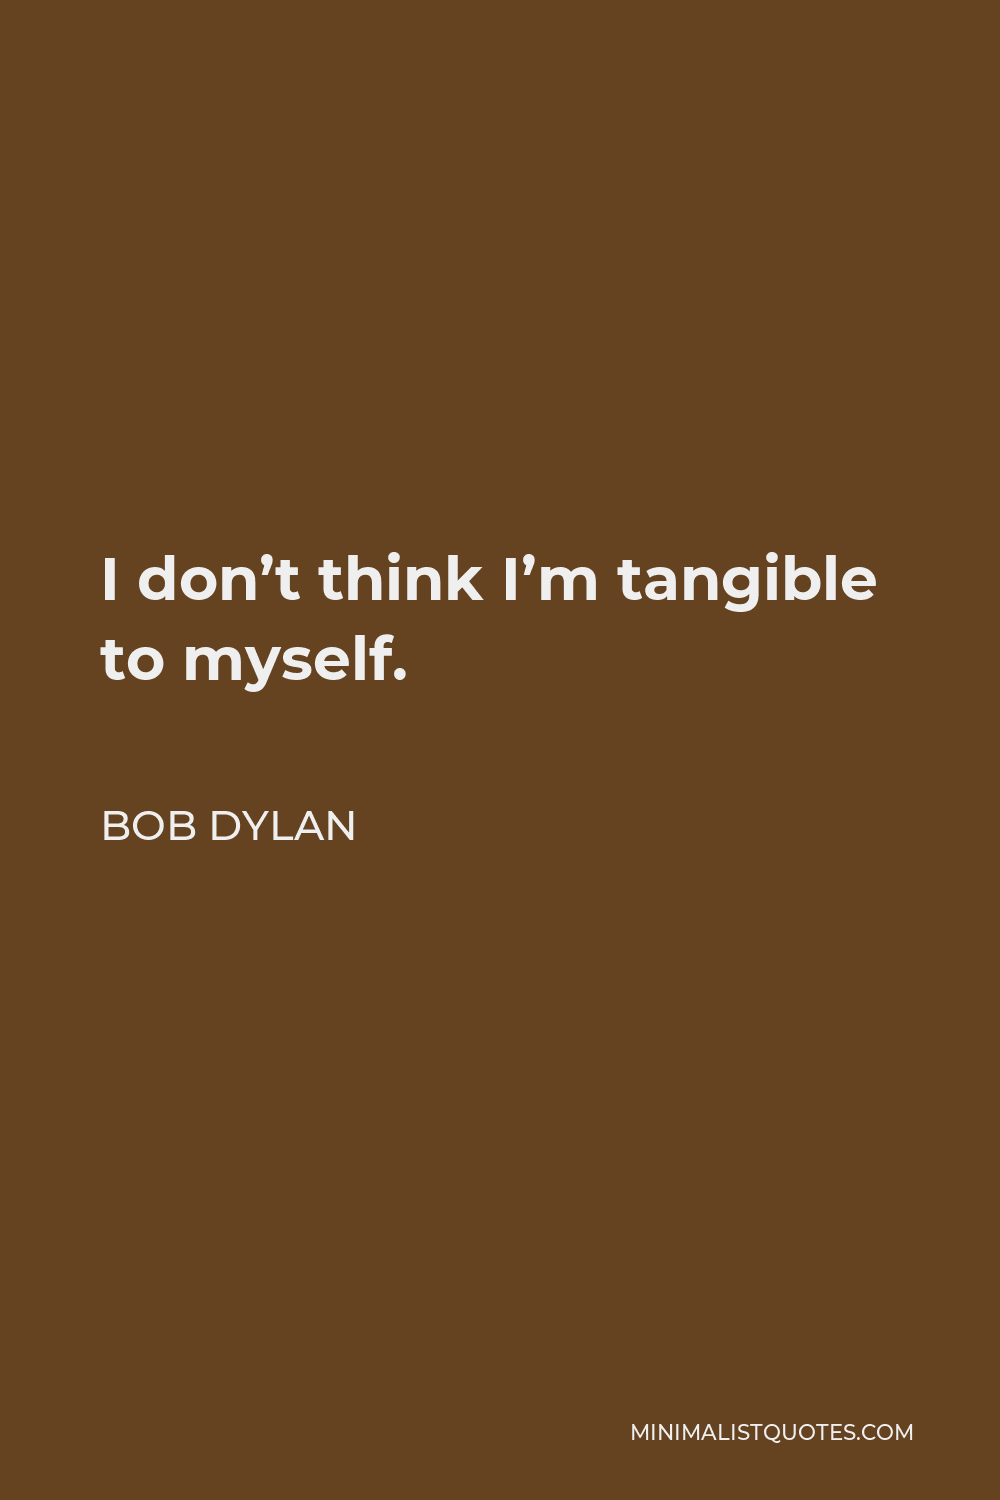 Bob Dylan Quote - I don't think I'm tangible to myself.